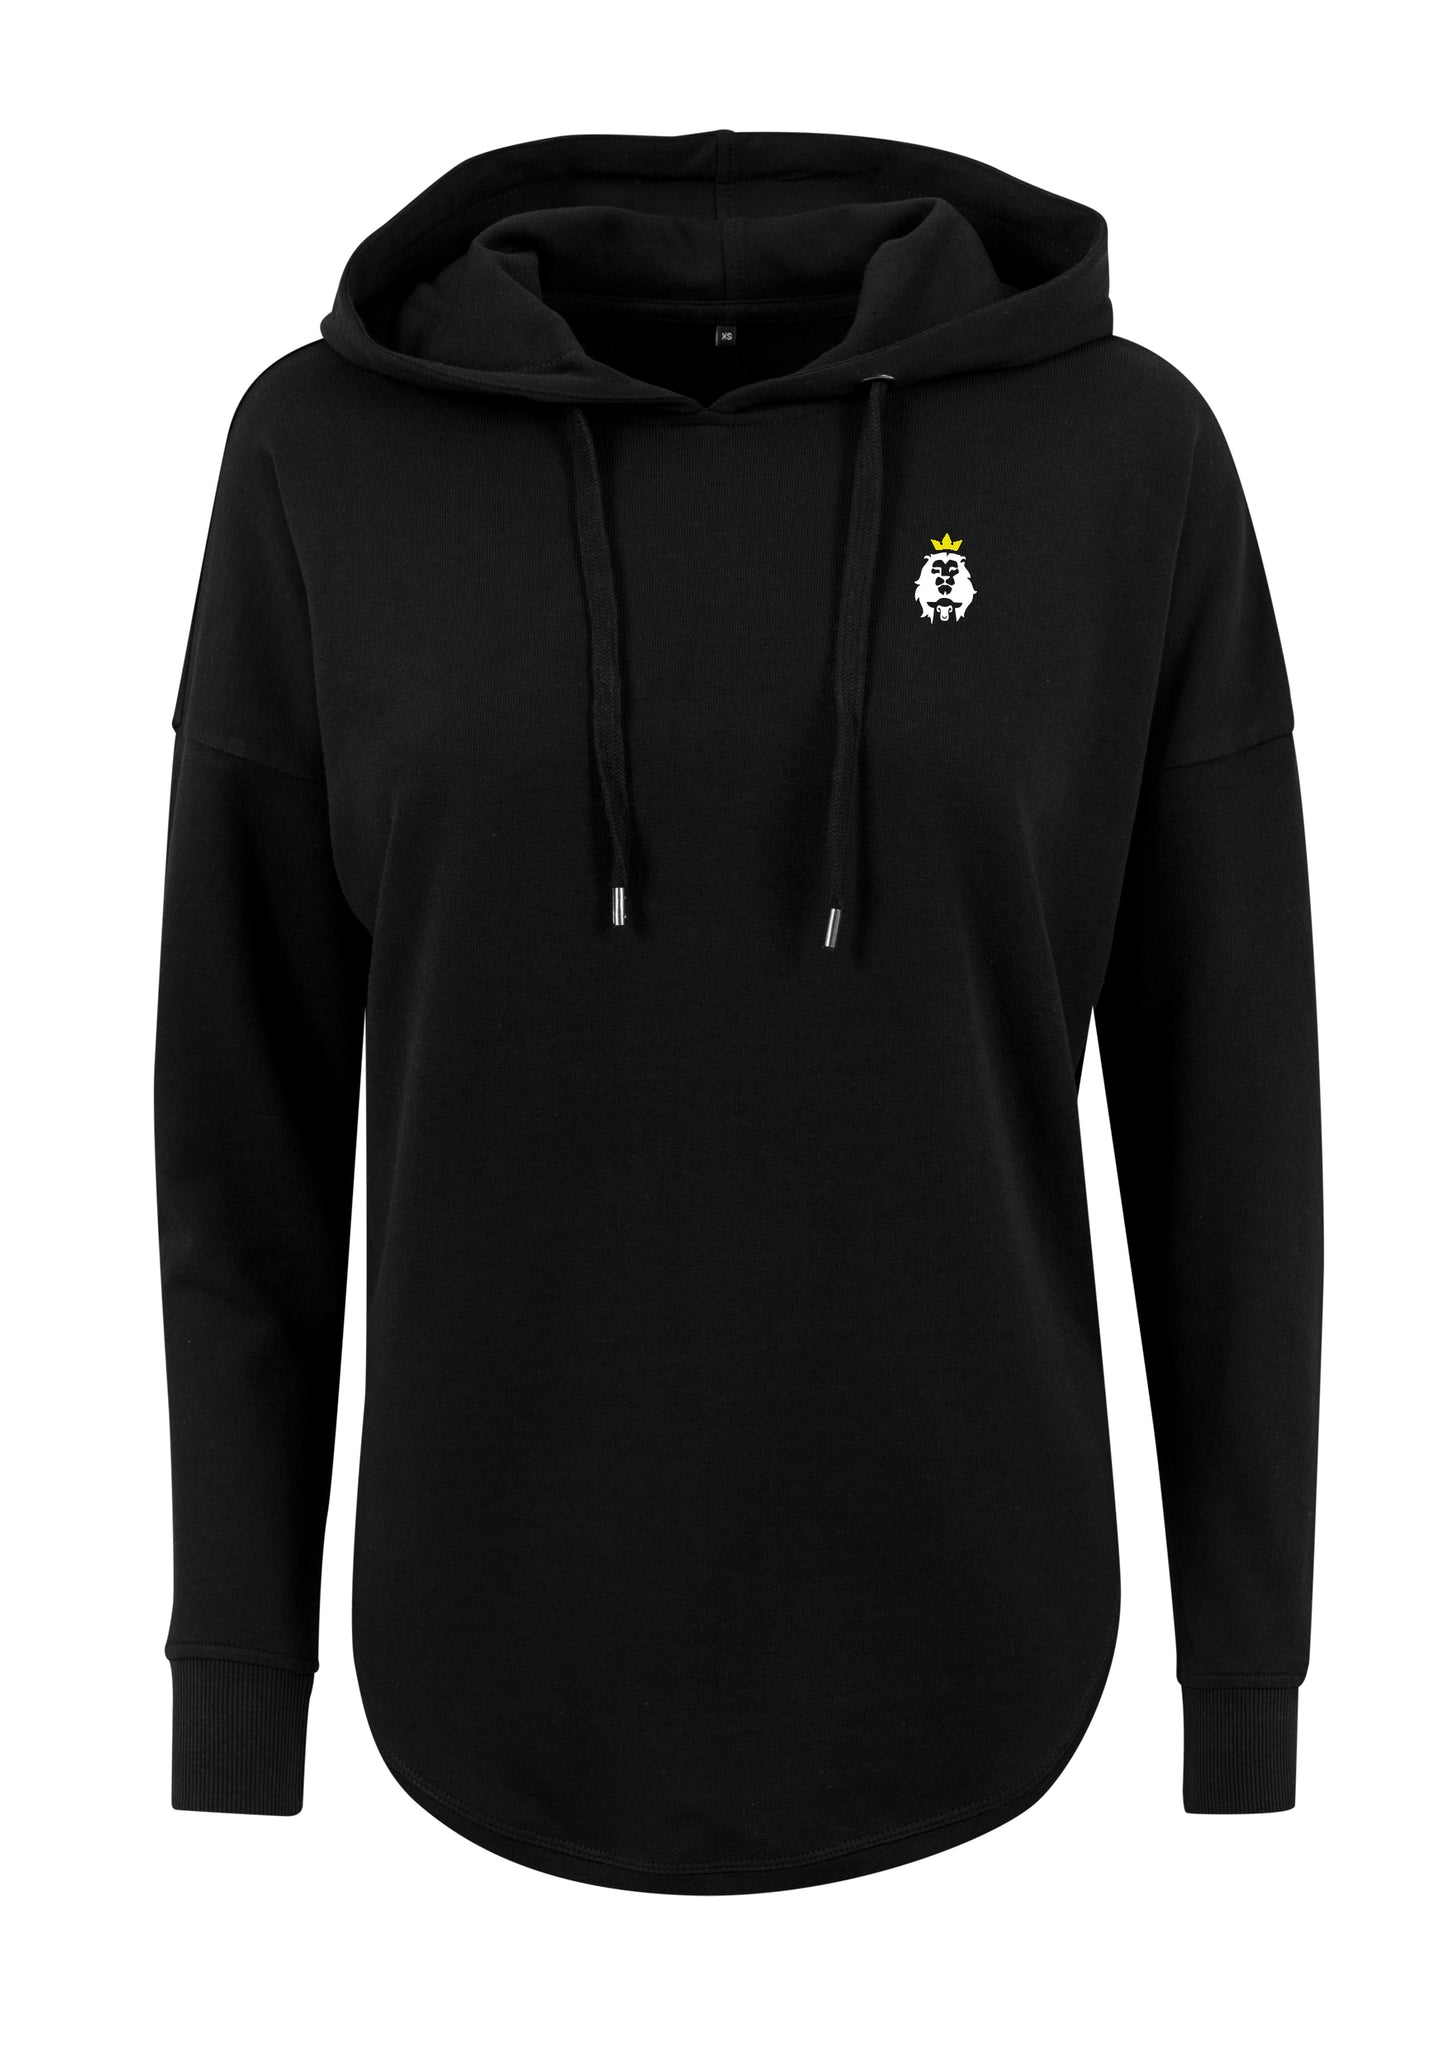 Women's LION AND LAMB Oversized Hoodie (Black)